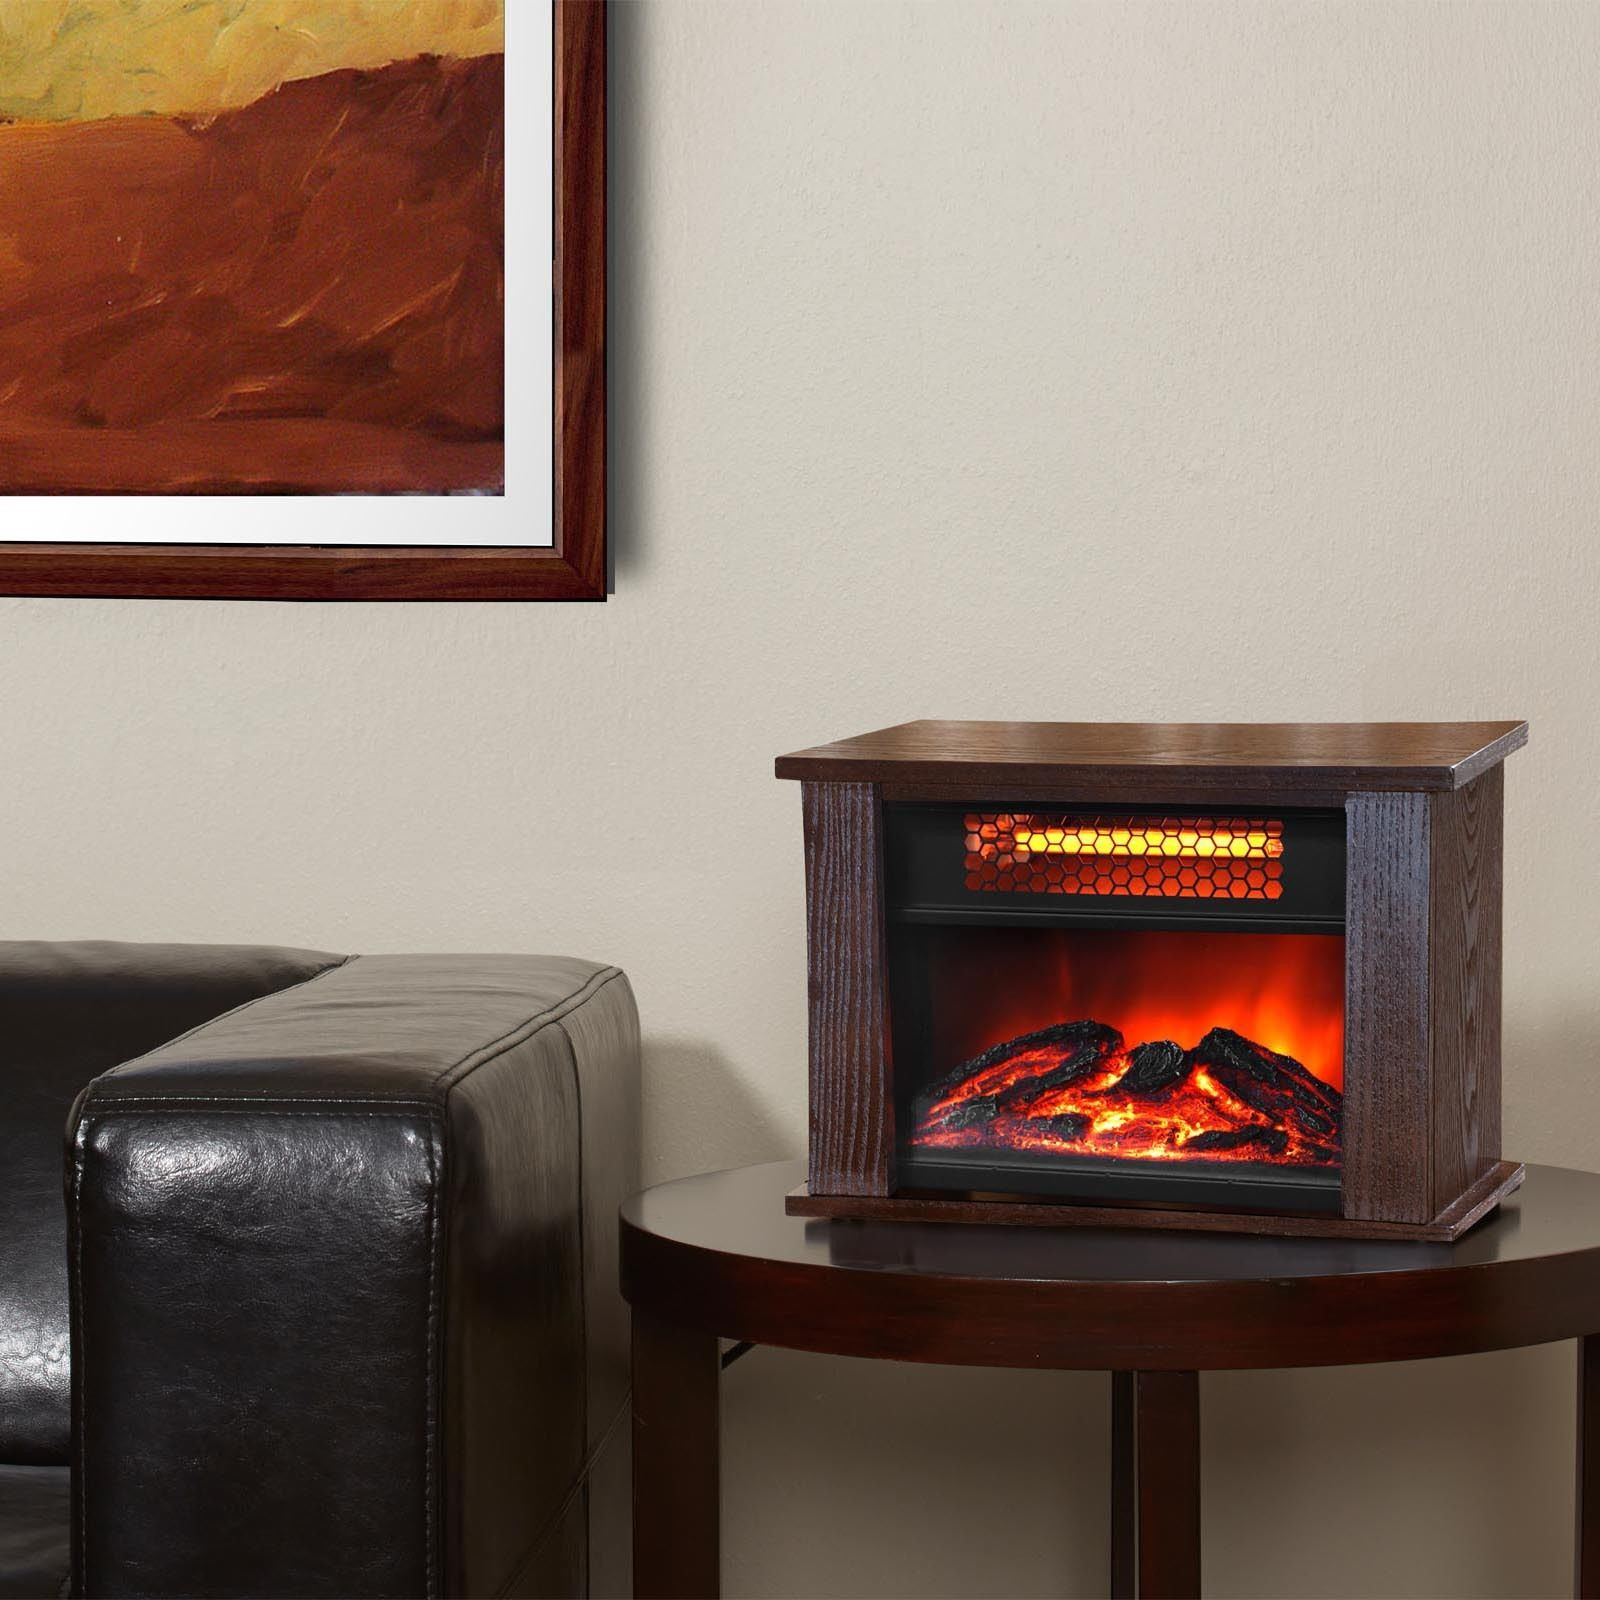 750 Watt Infrared Mini Fireplace Heater